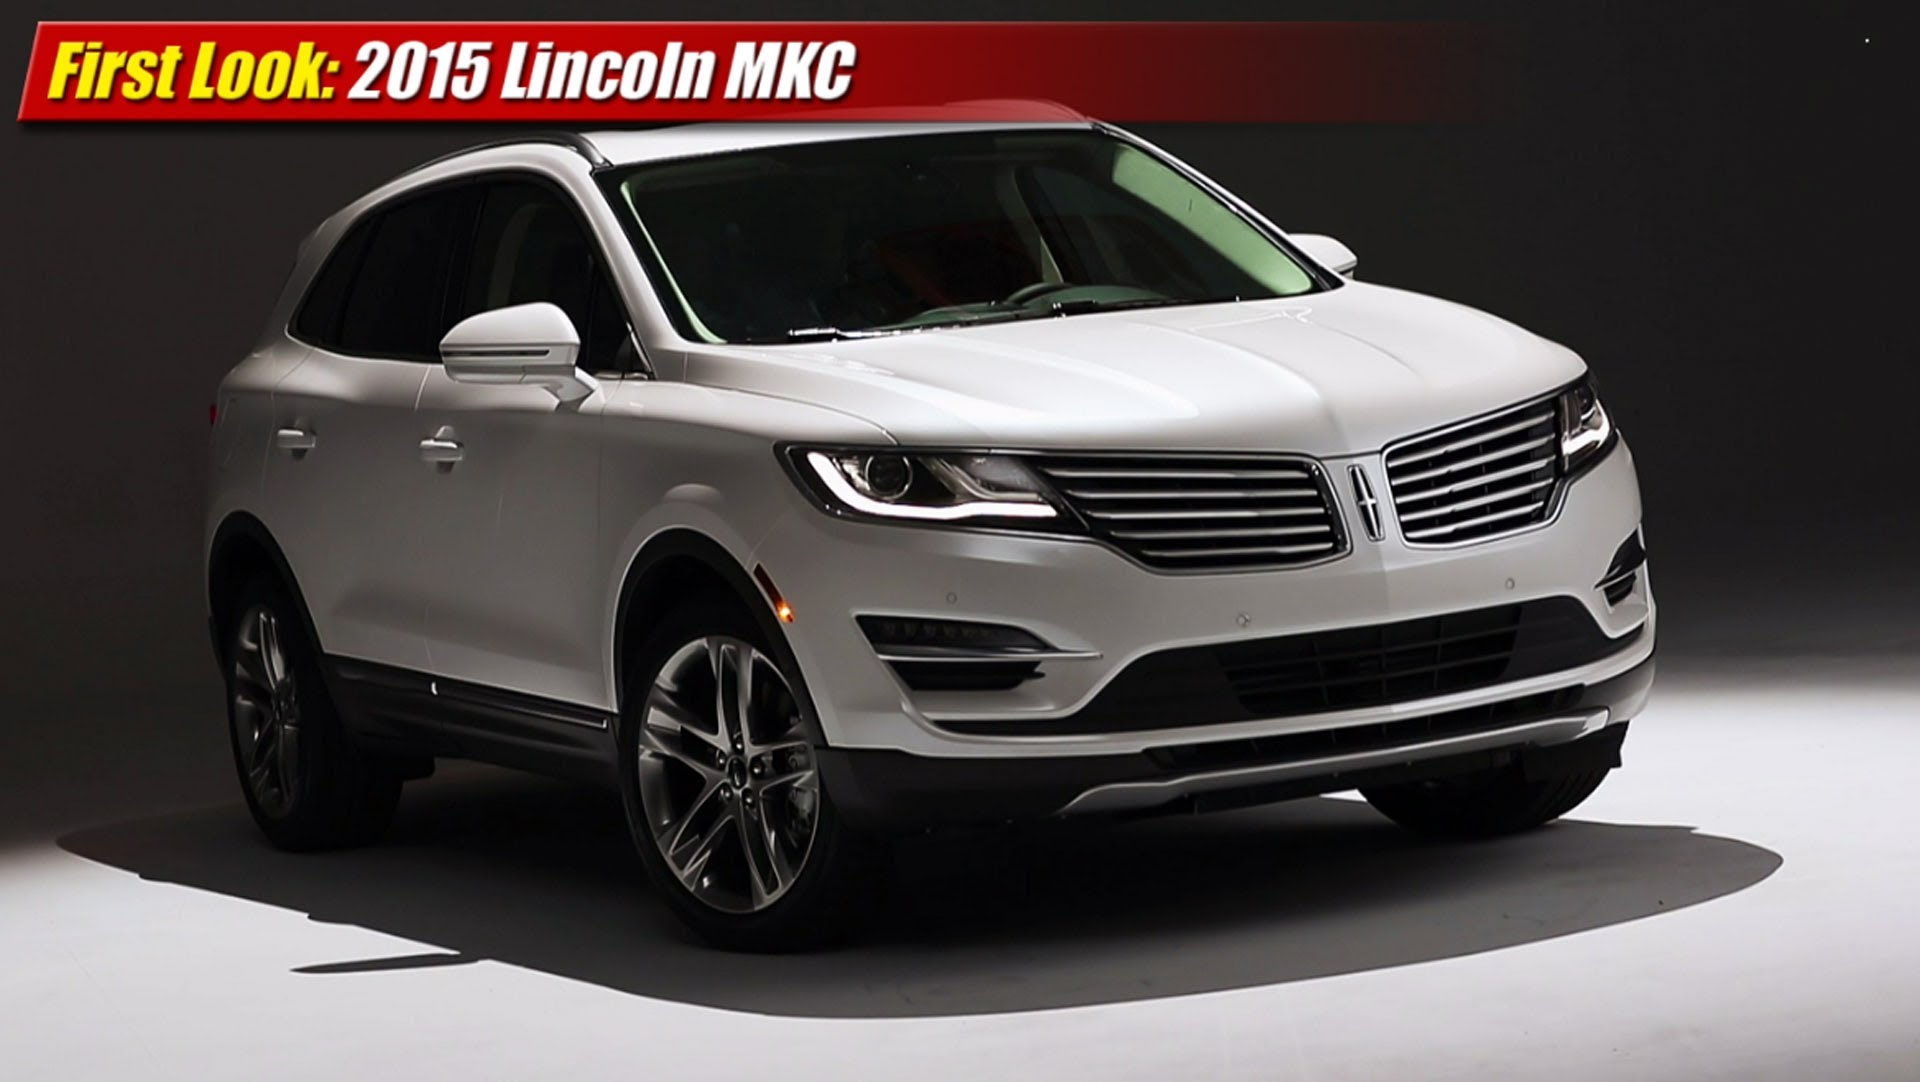 first look 2015 lincoln mkc luxury crossover suv testdriven tv. Black Bedroom Furniture Sets. Home Design Ideas